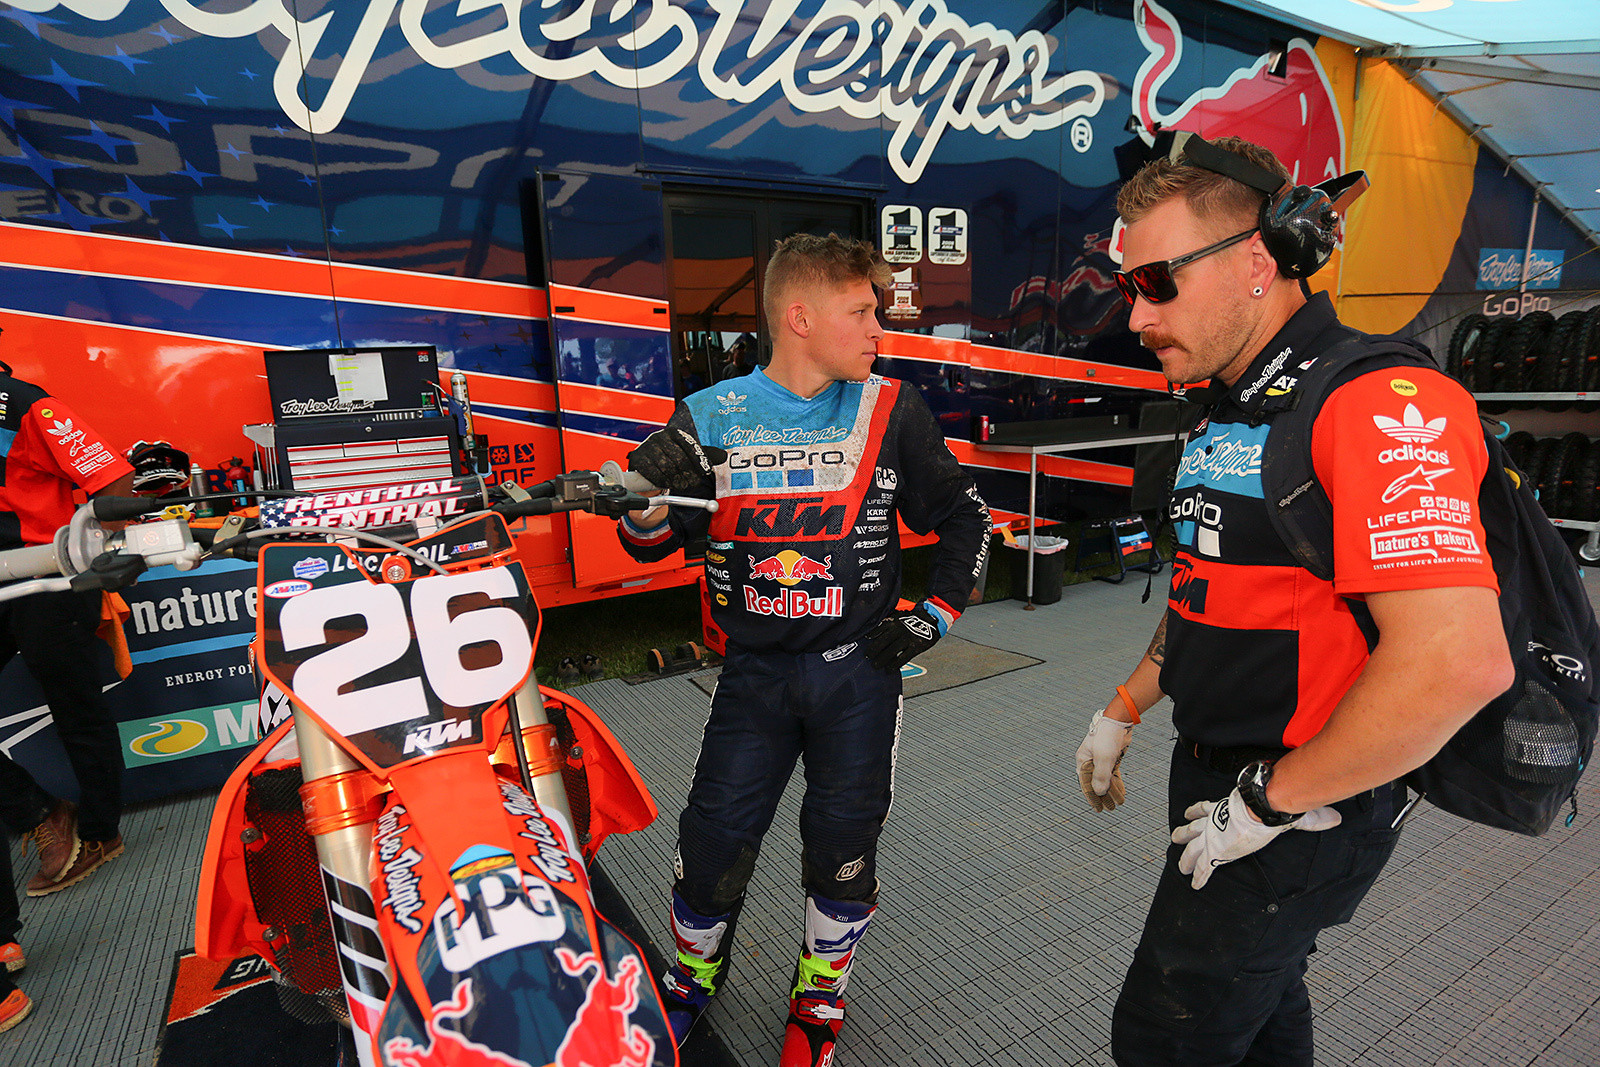 Yeah, the moustache is getting strong for Alex Martin's mechanic, Jordan Troxel. Almost Magnum-like.